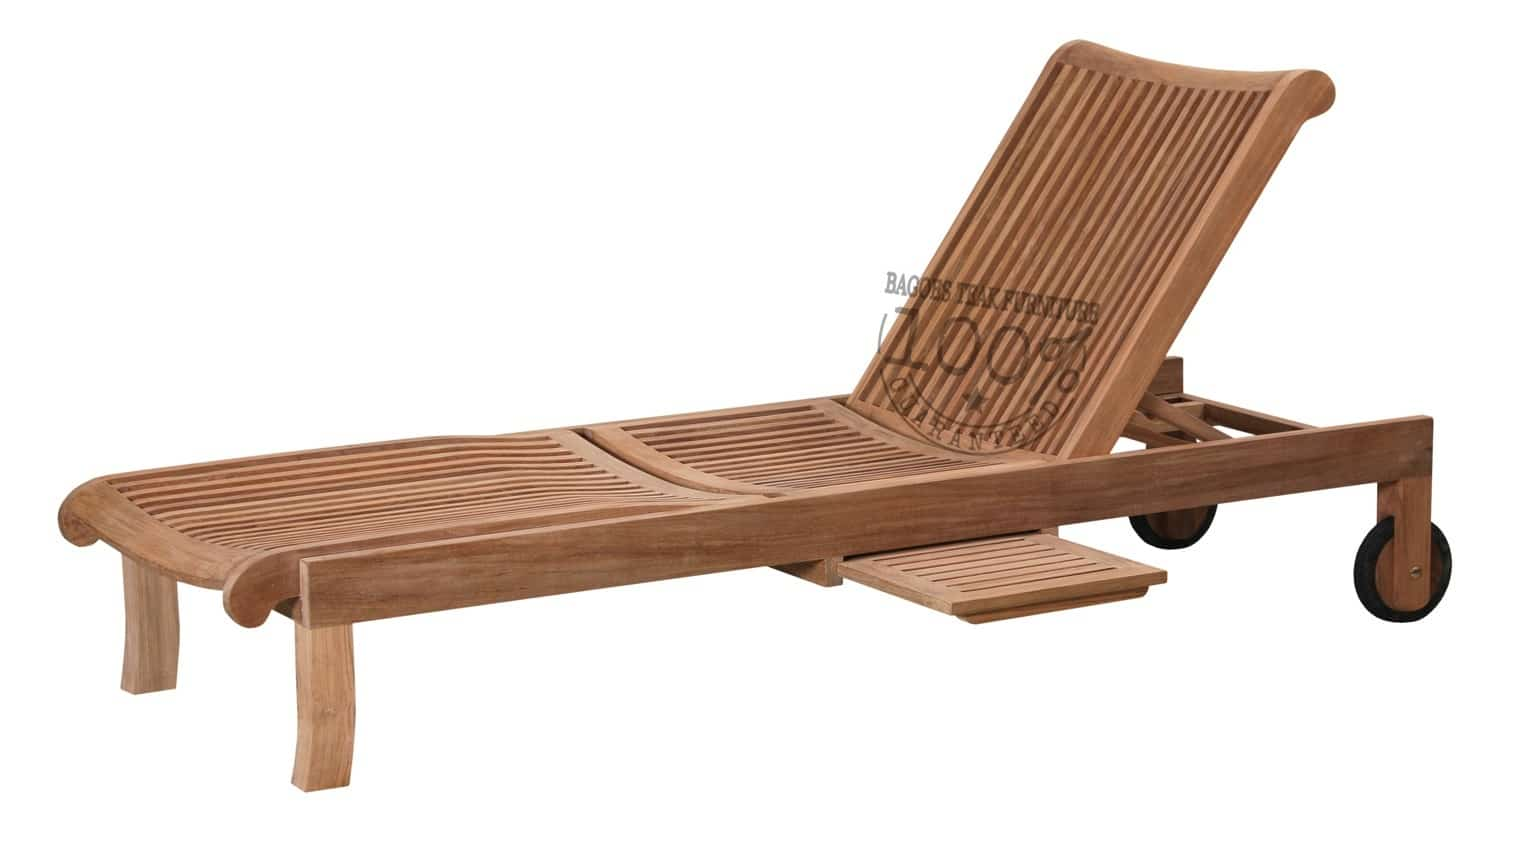 Outdoor Teak Sun Lounger